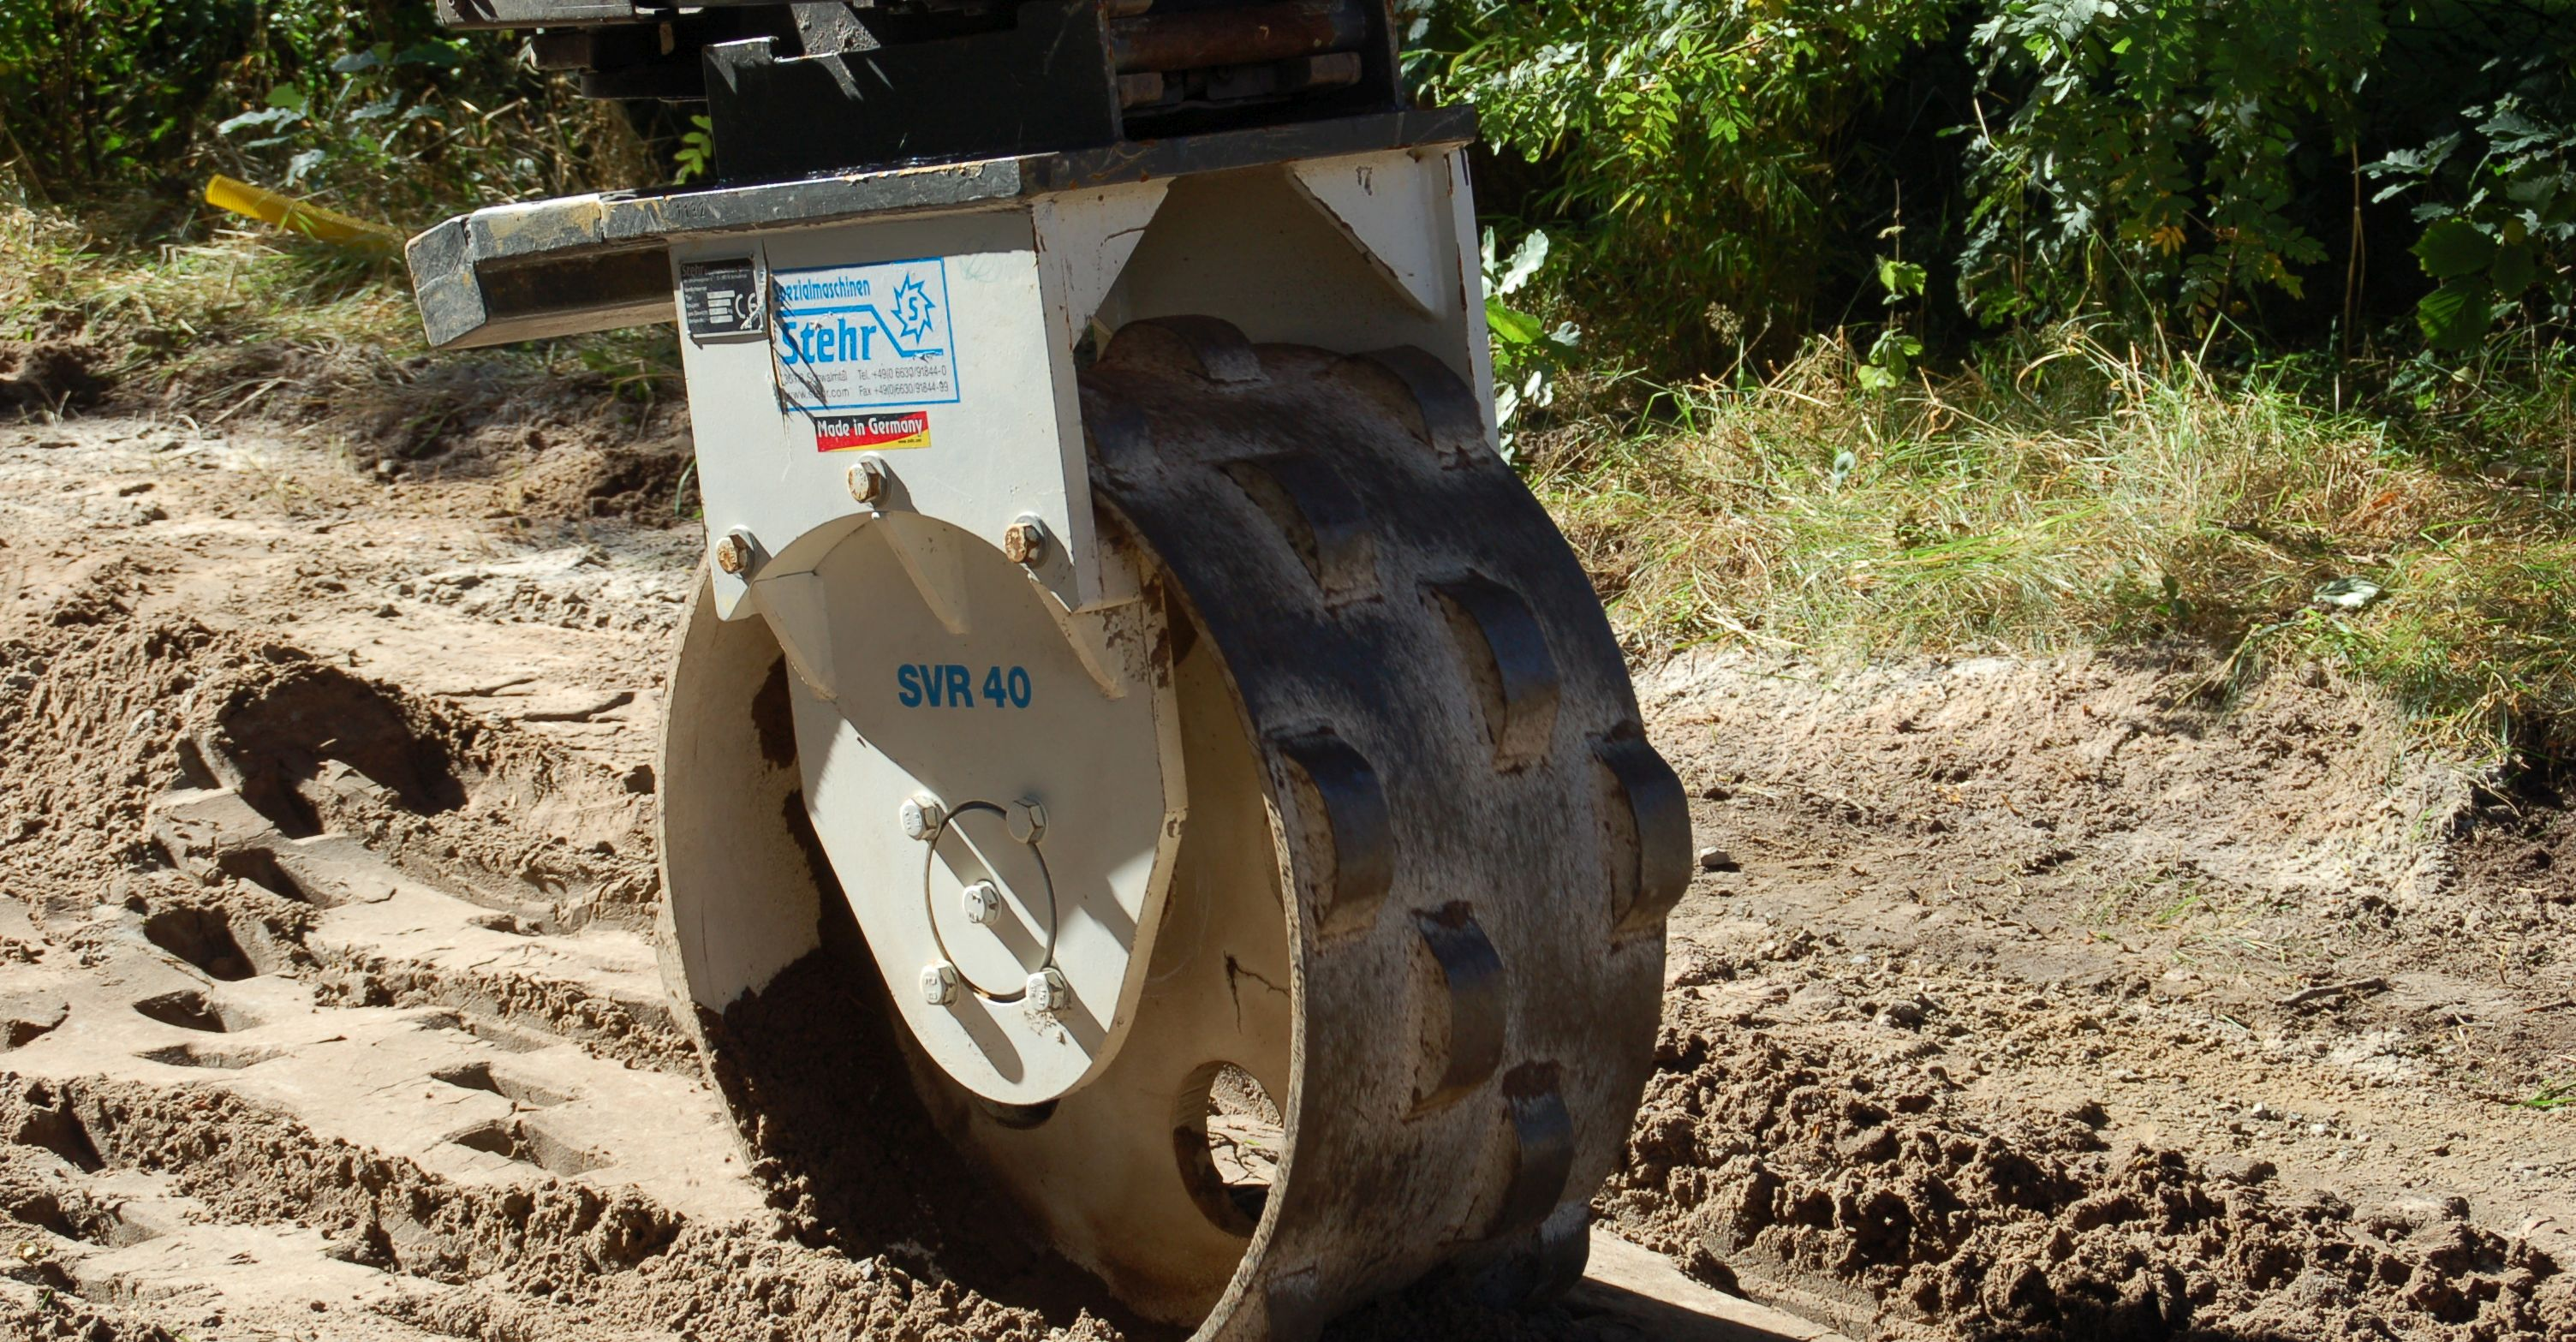 Stehr SVR 40 HF Excavator Mounted Compaction Wheel